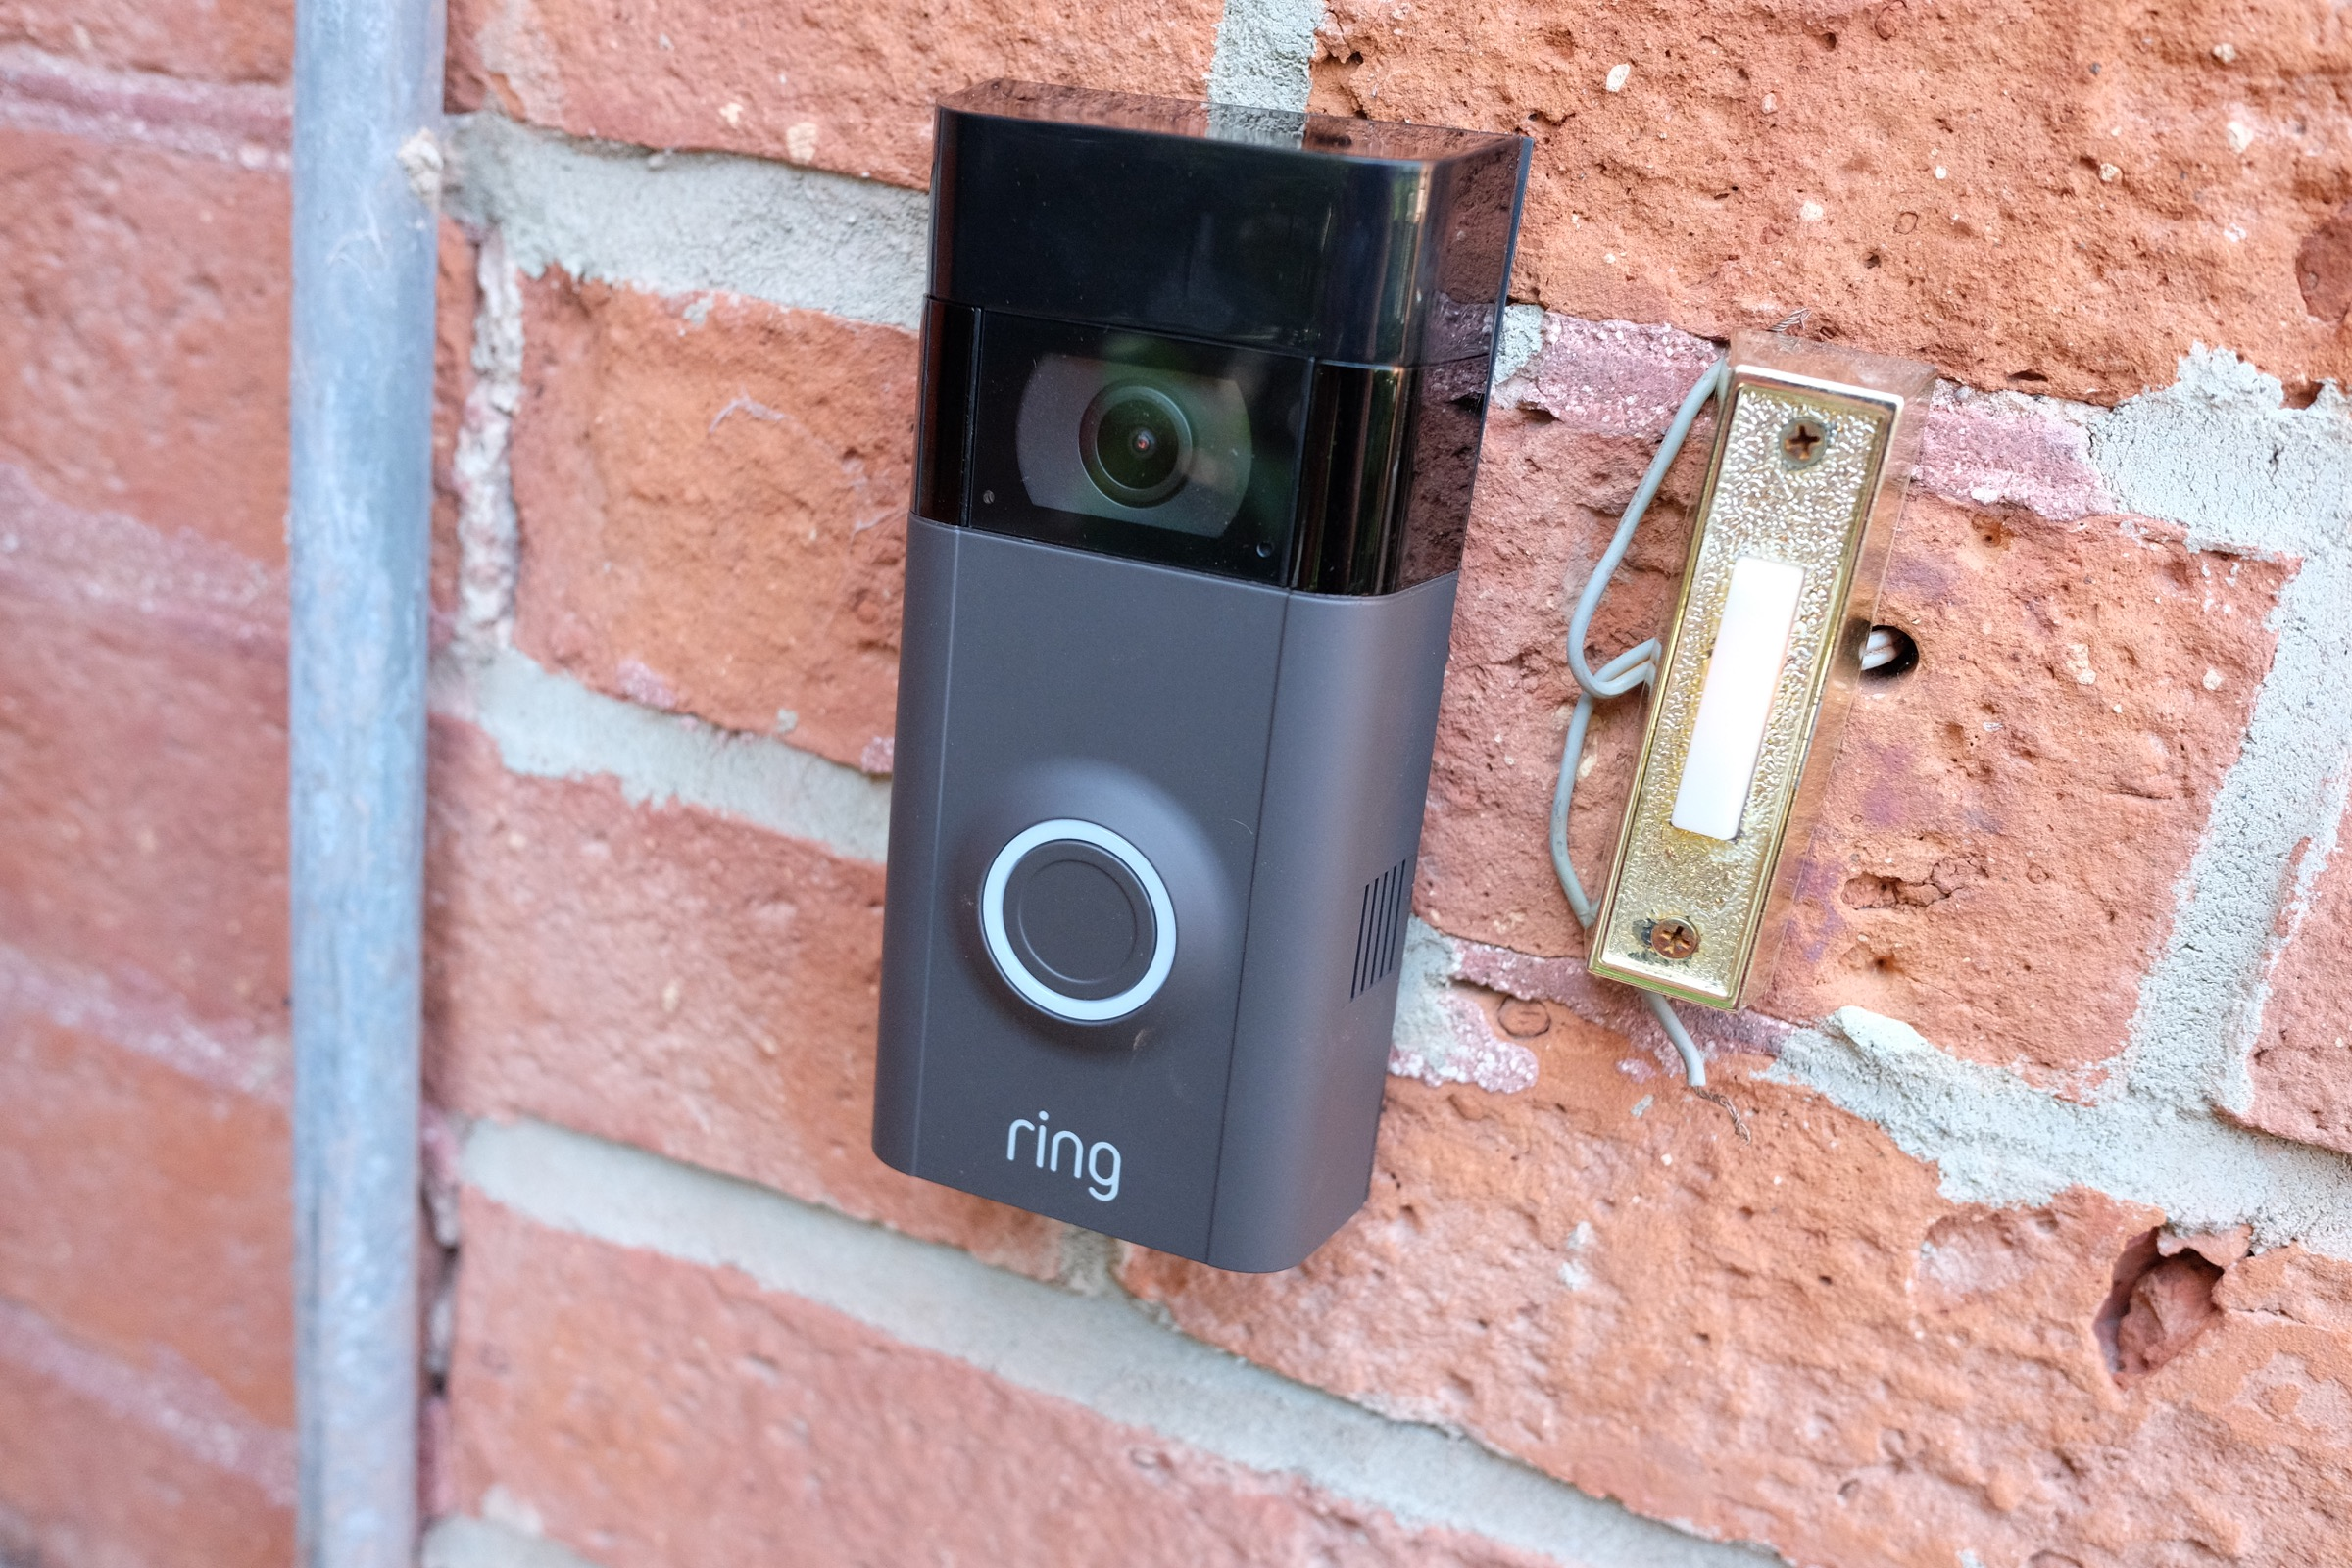 Amazon is buying smart doorbell maker Ring